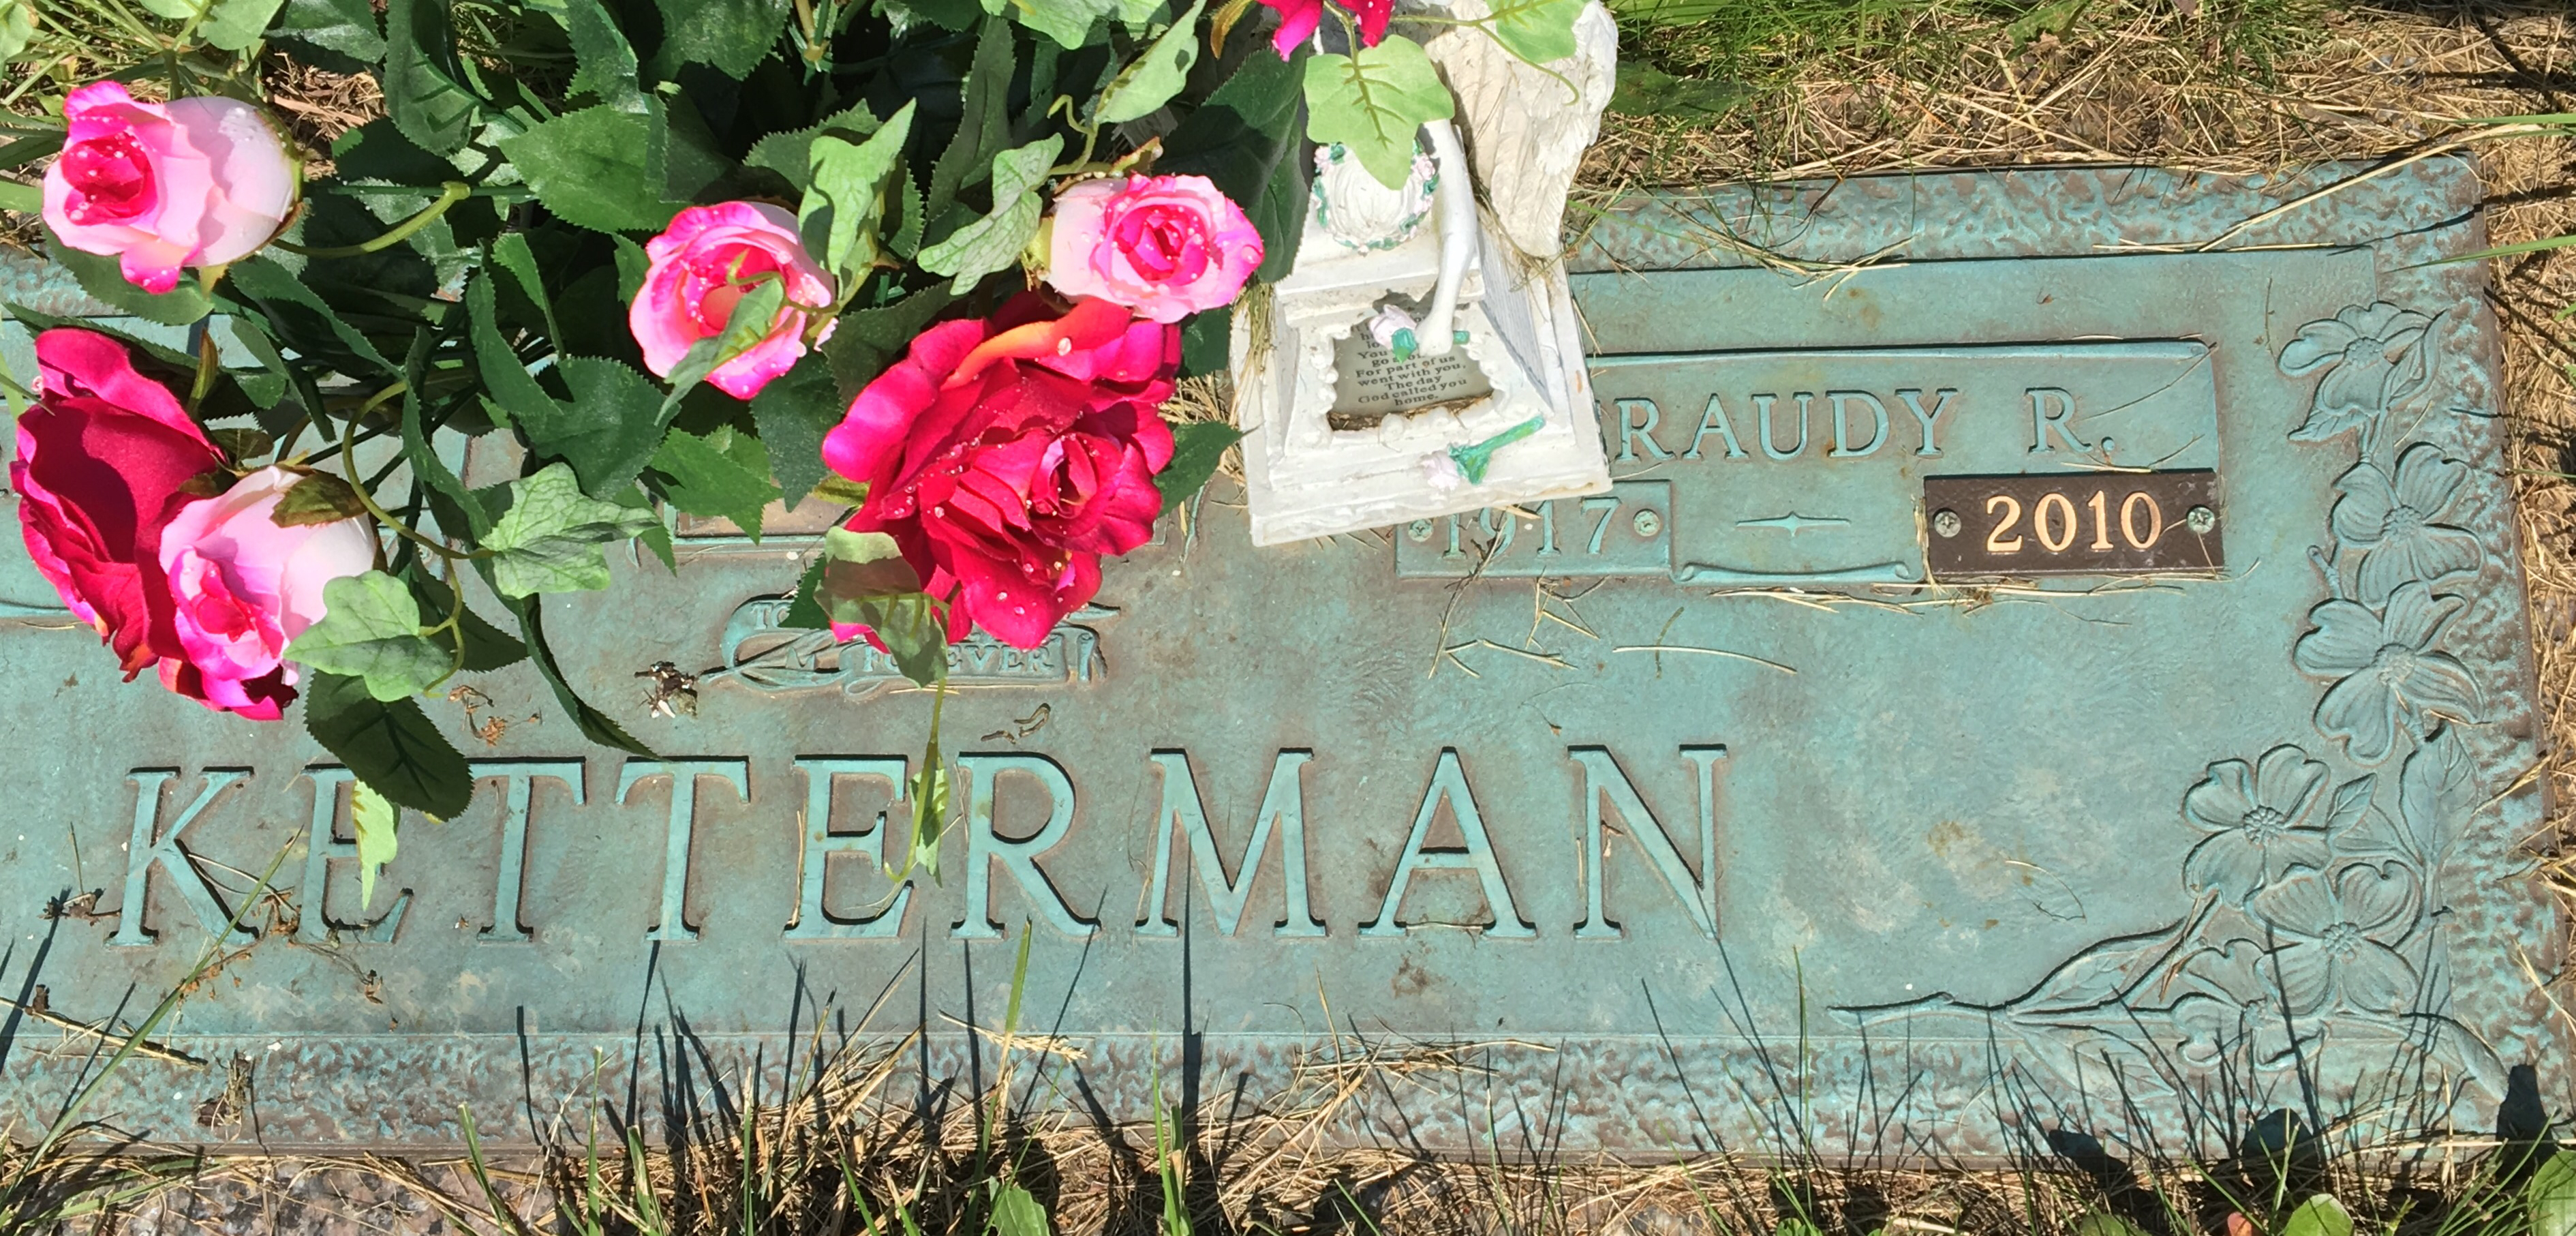 Straudy Rose White Ketterman Find A Grave Memorial